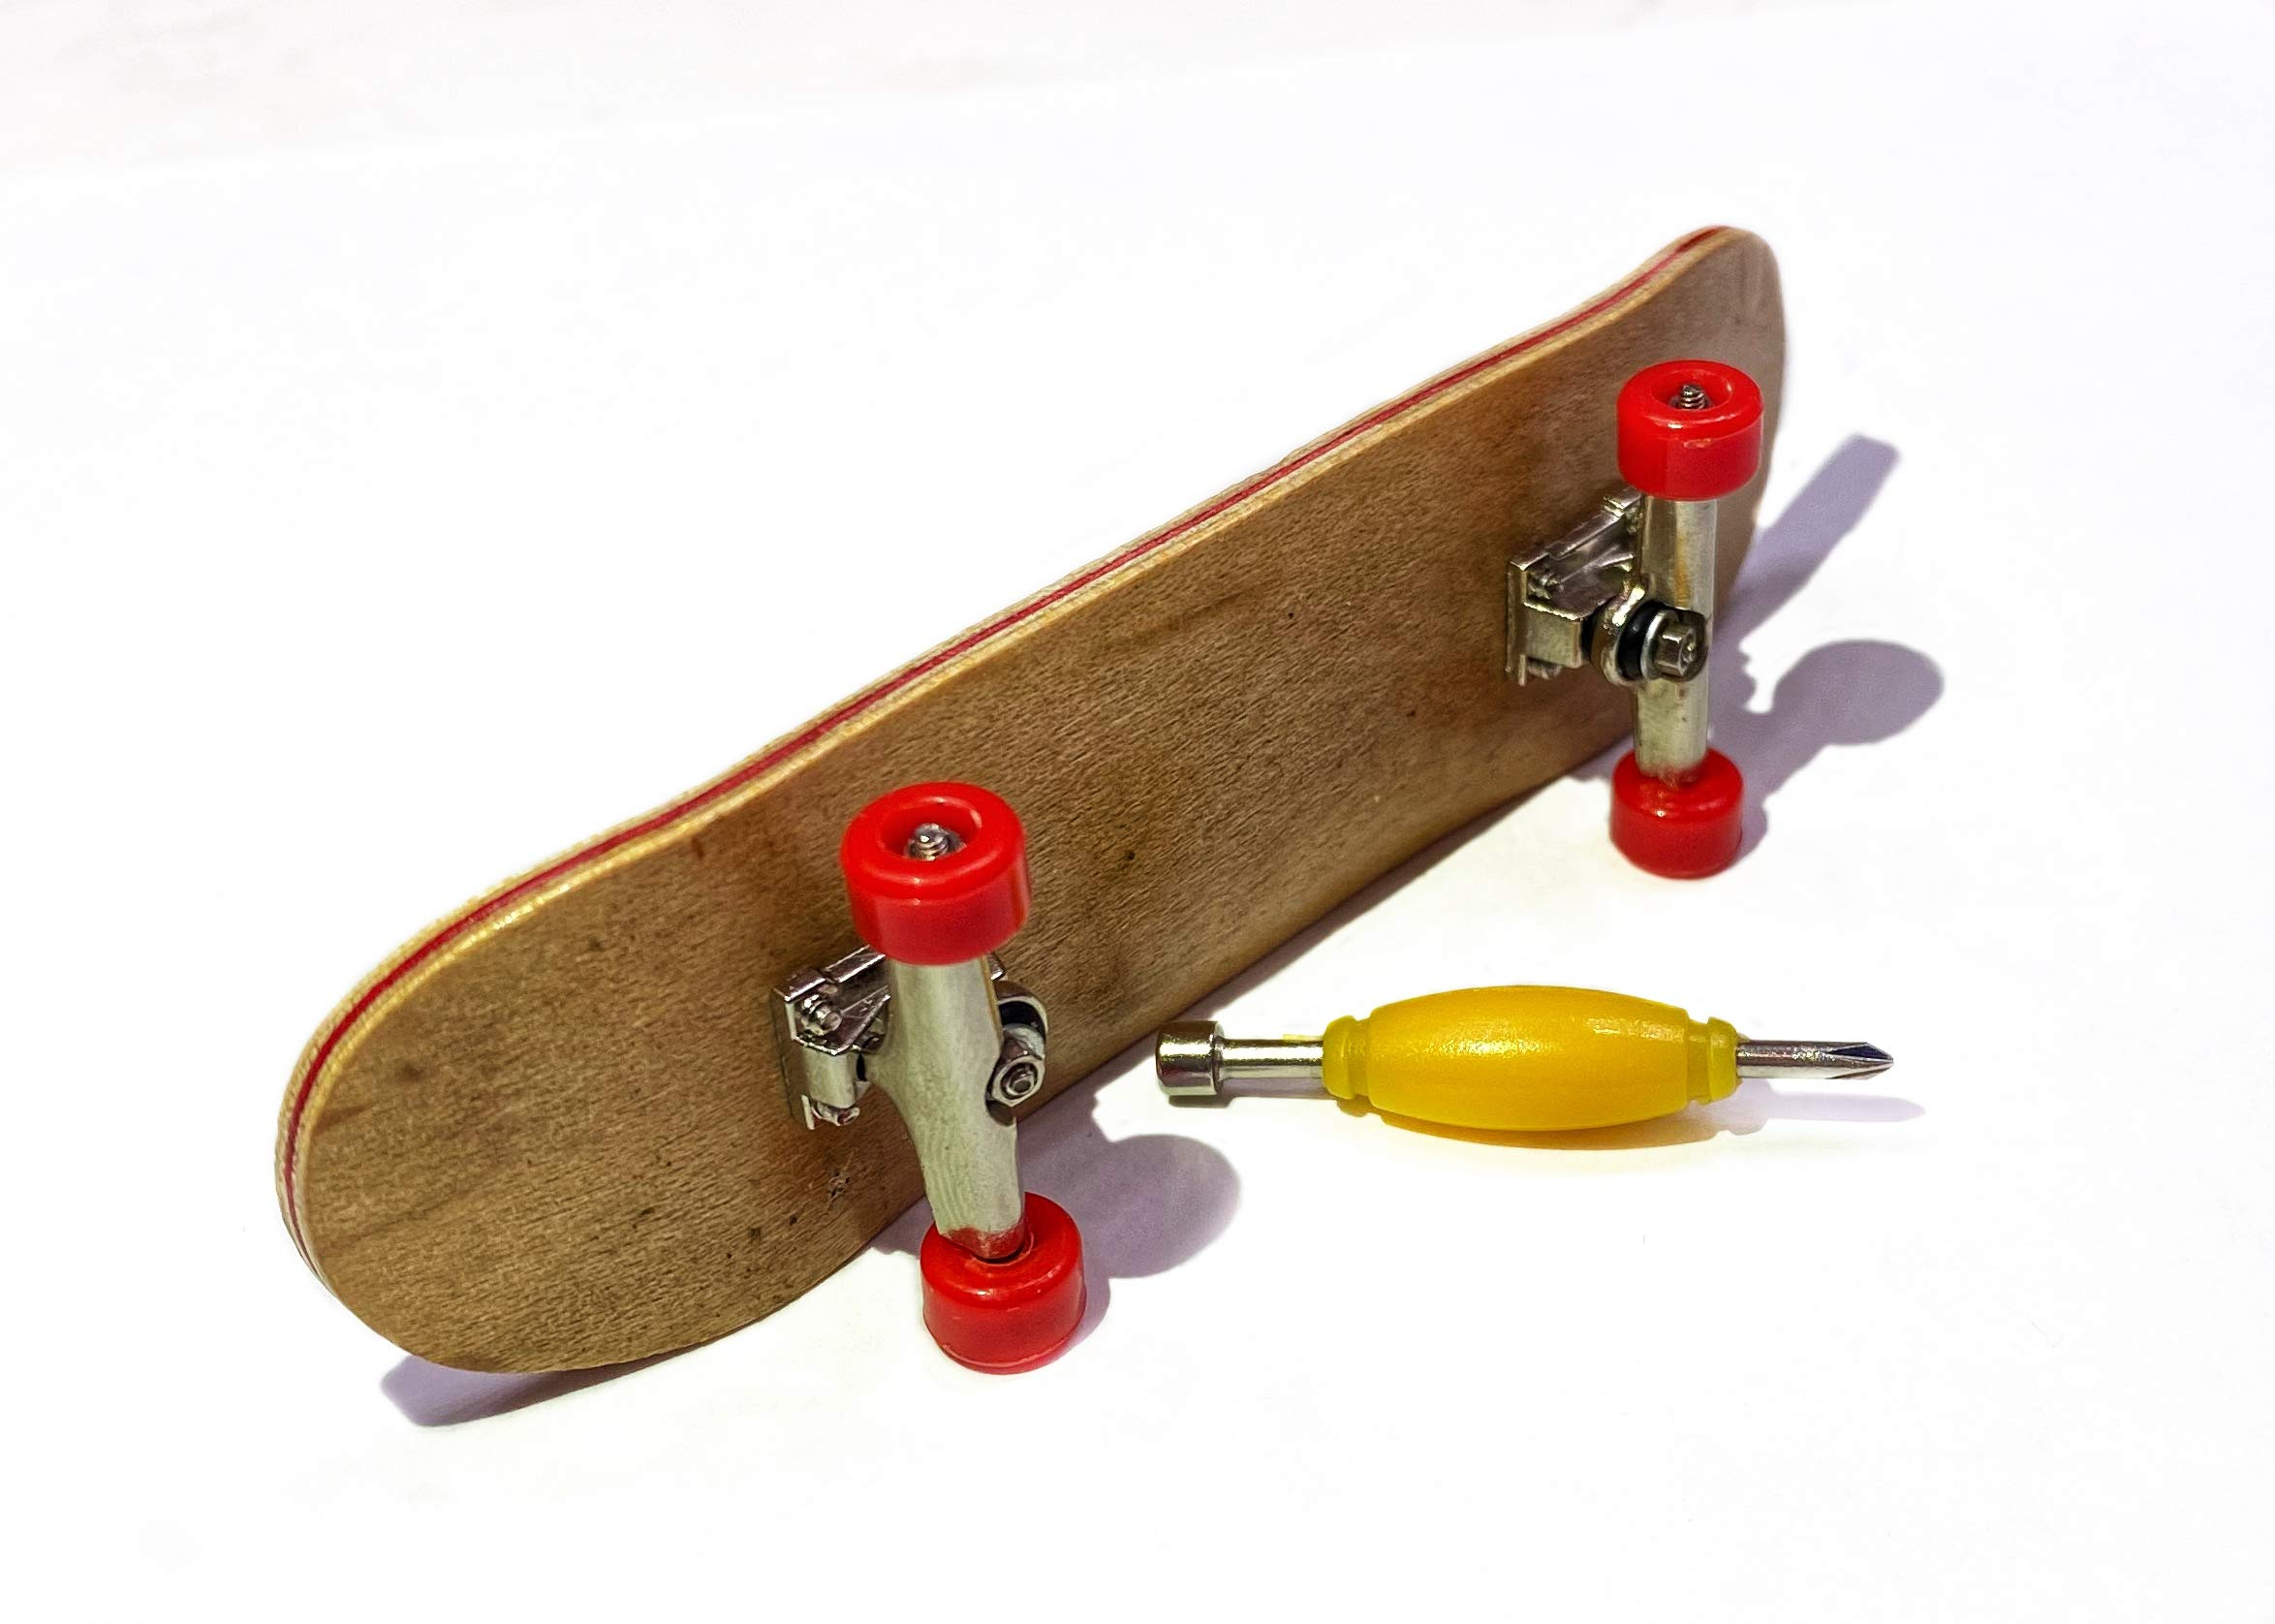 Cherry Extra Wide Peoples Republic 32MM Wooden Fingerboard Deck